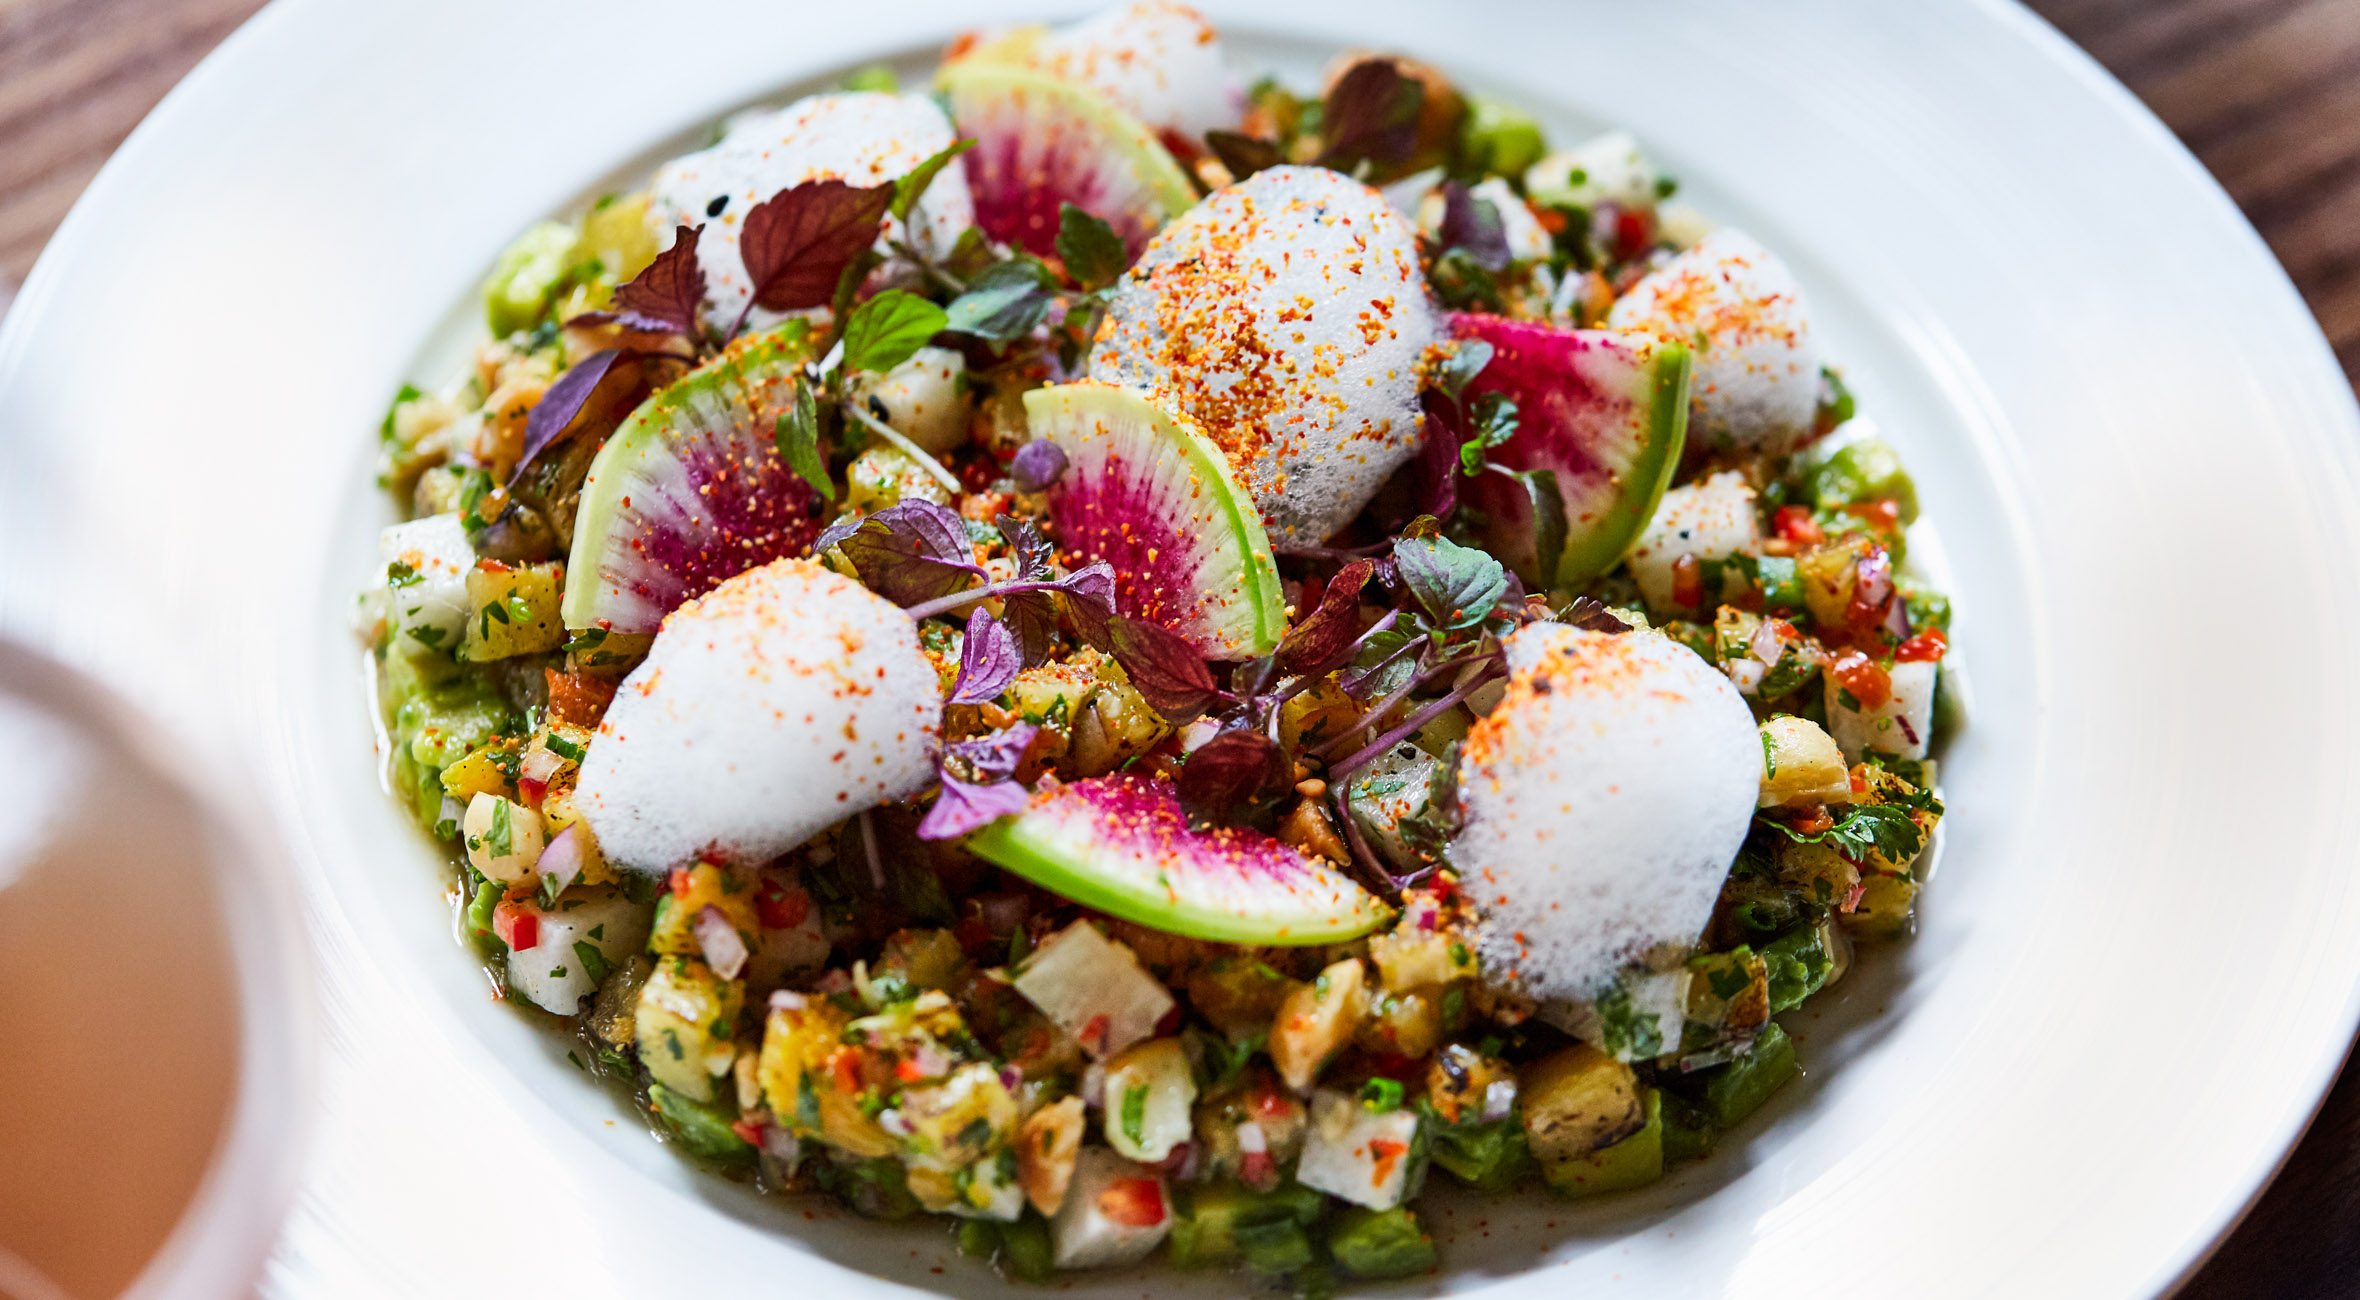 3-Course Menu at Michelin-Recommended Avant Garden – Vegan Fine Dining Restaurant Branches out to Williamsburg